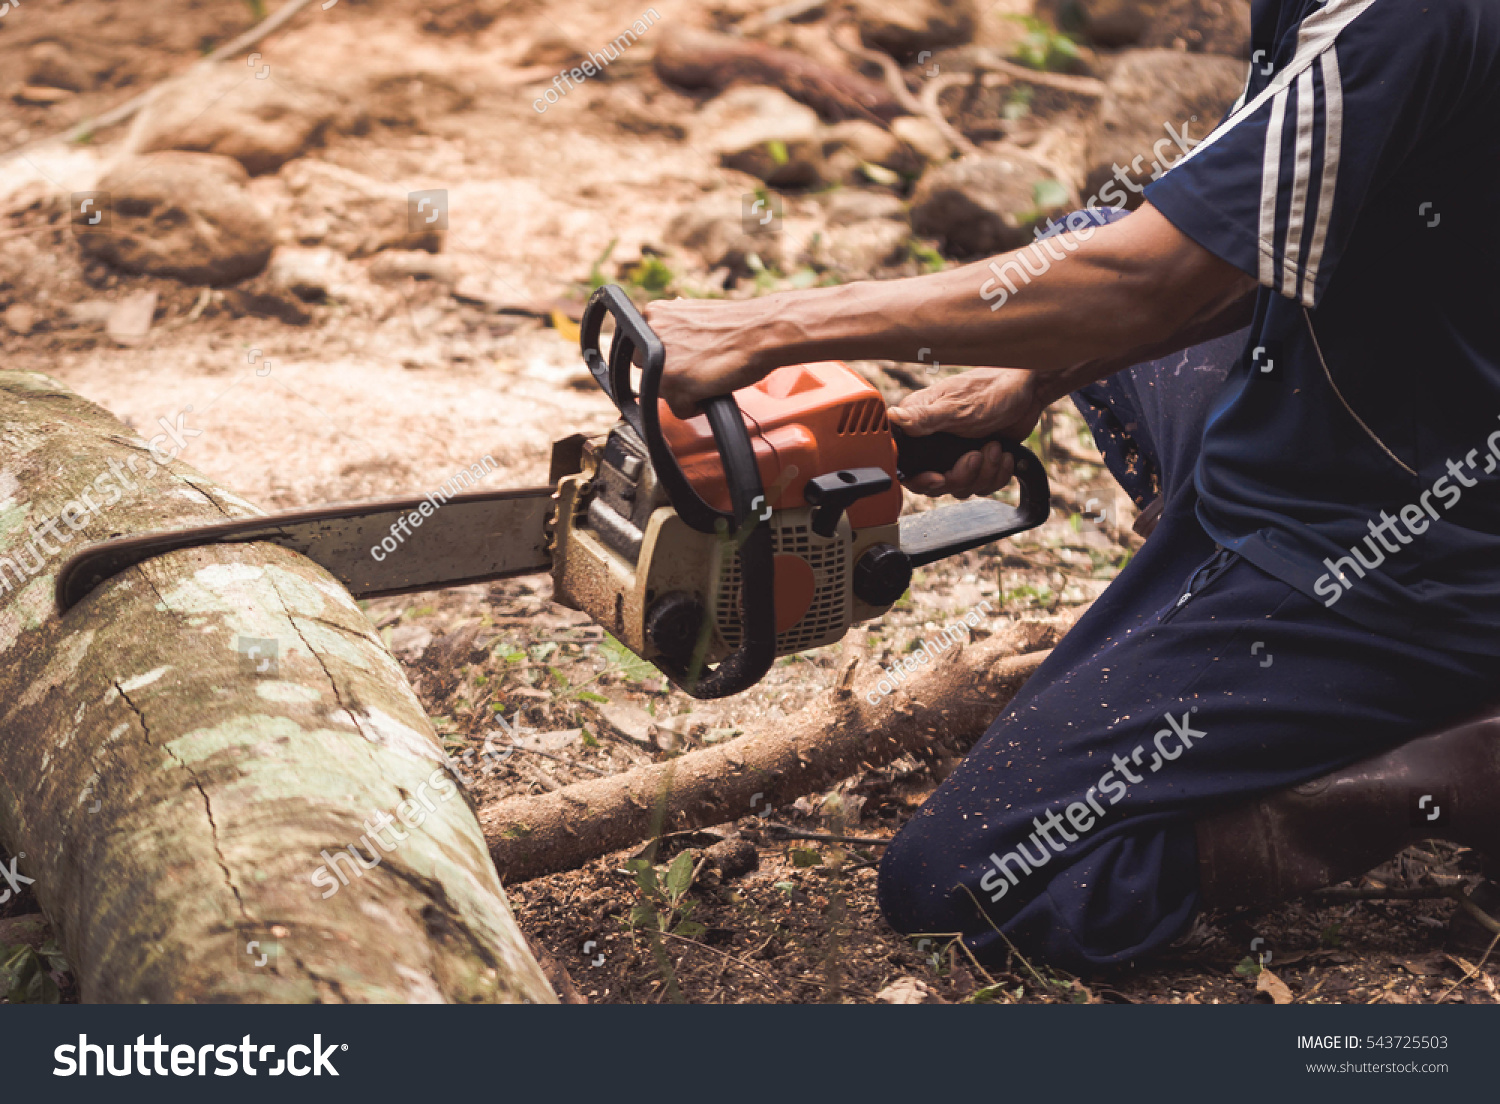 how to cut limbs off a tree with a chainsaw